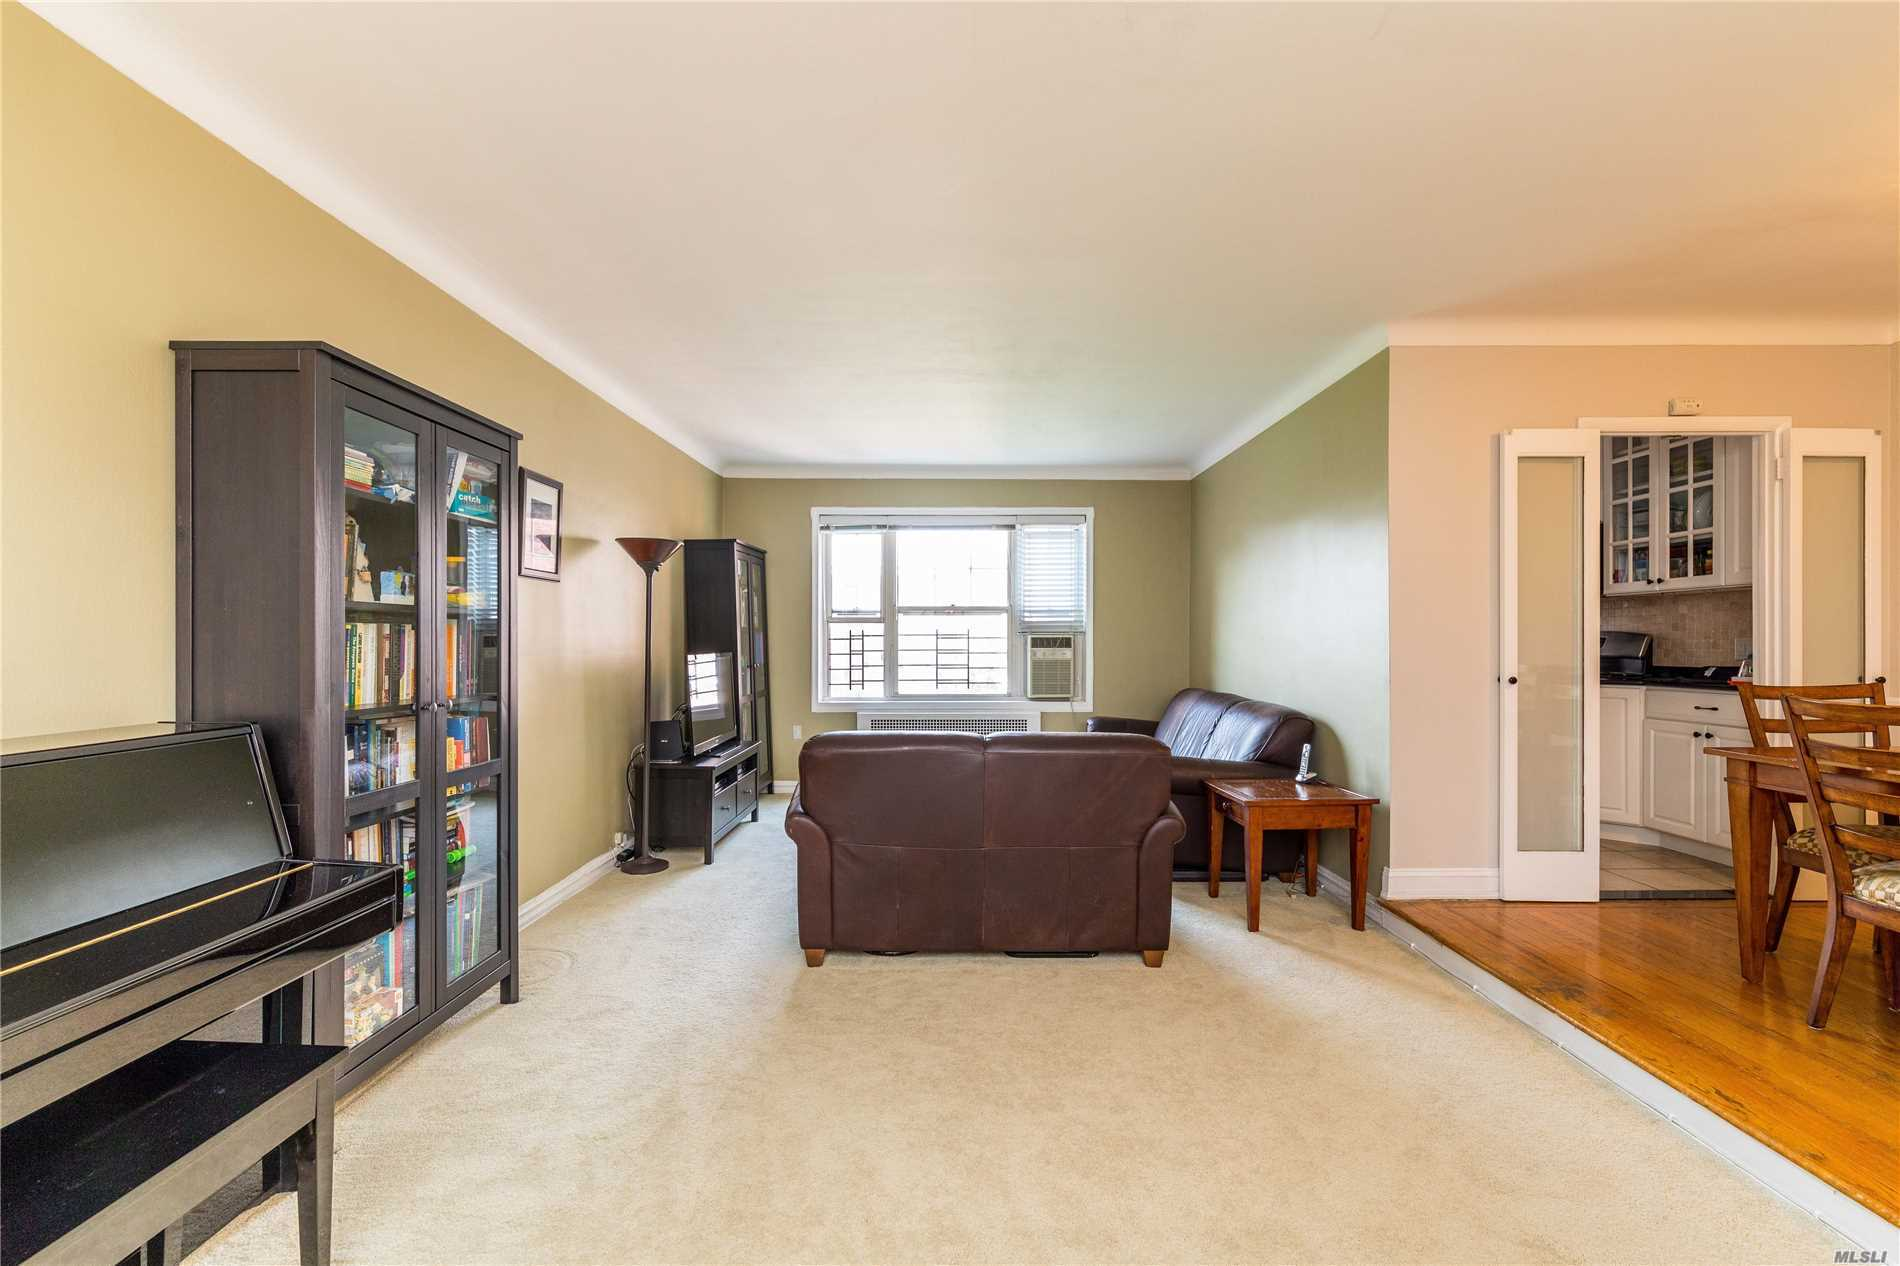 76-35 113th St, 6F - Forest Hills, New York